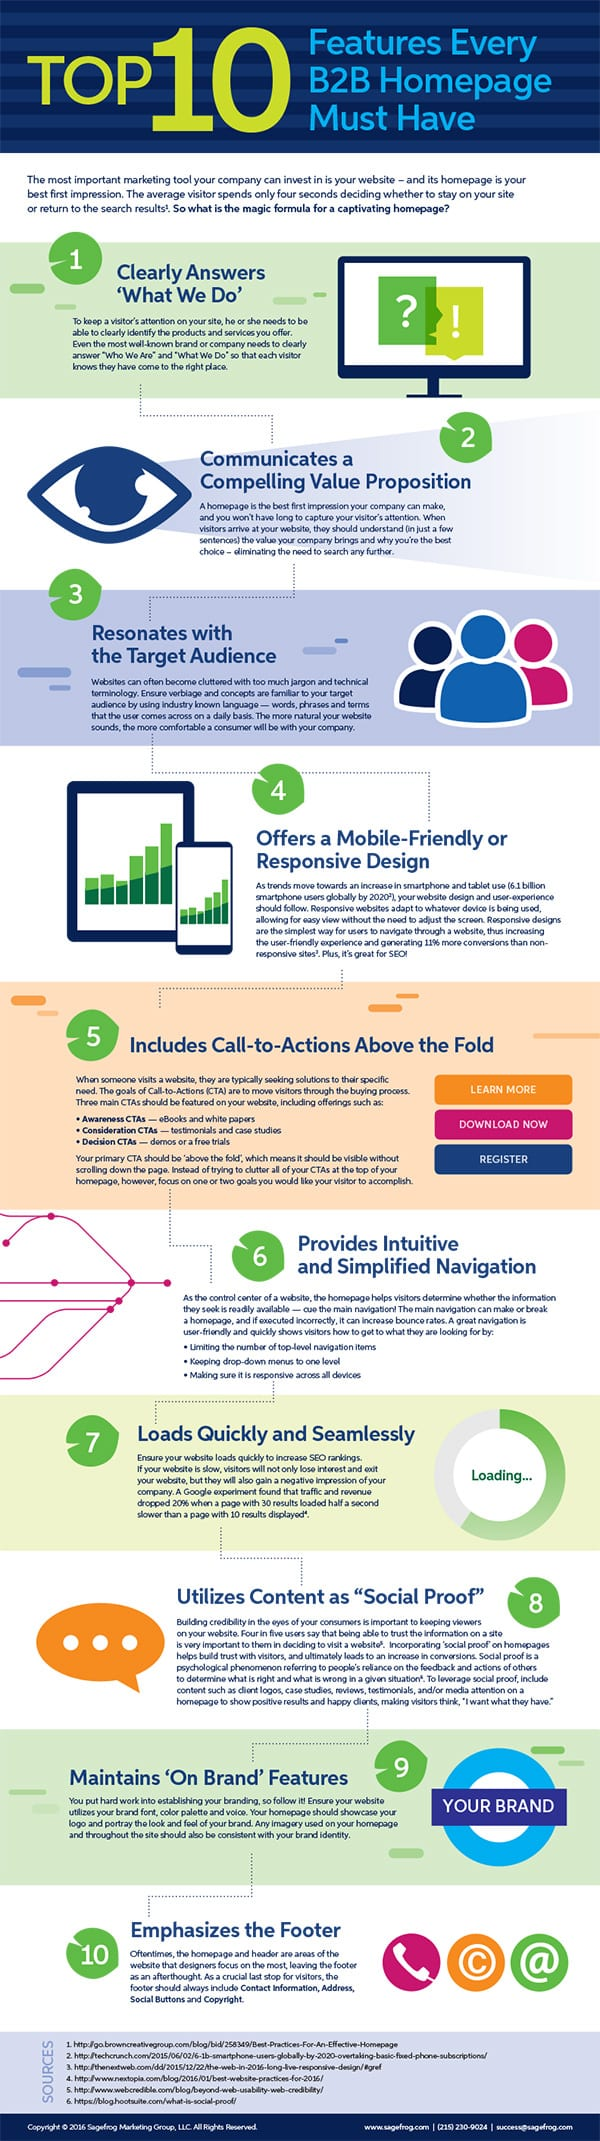 Top-10-Features-Every-B2B-Homepage-Must-Have-Infographic